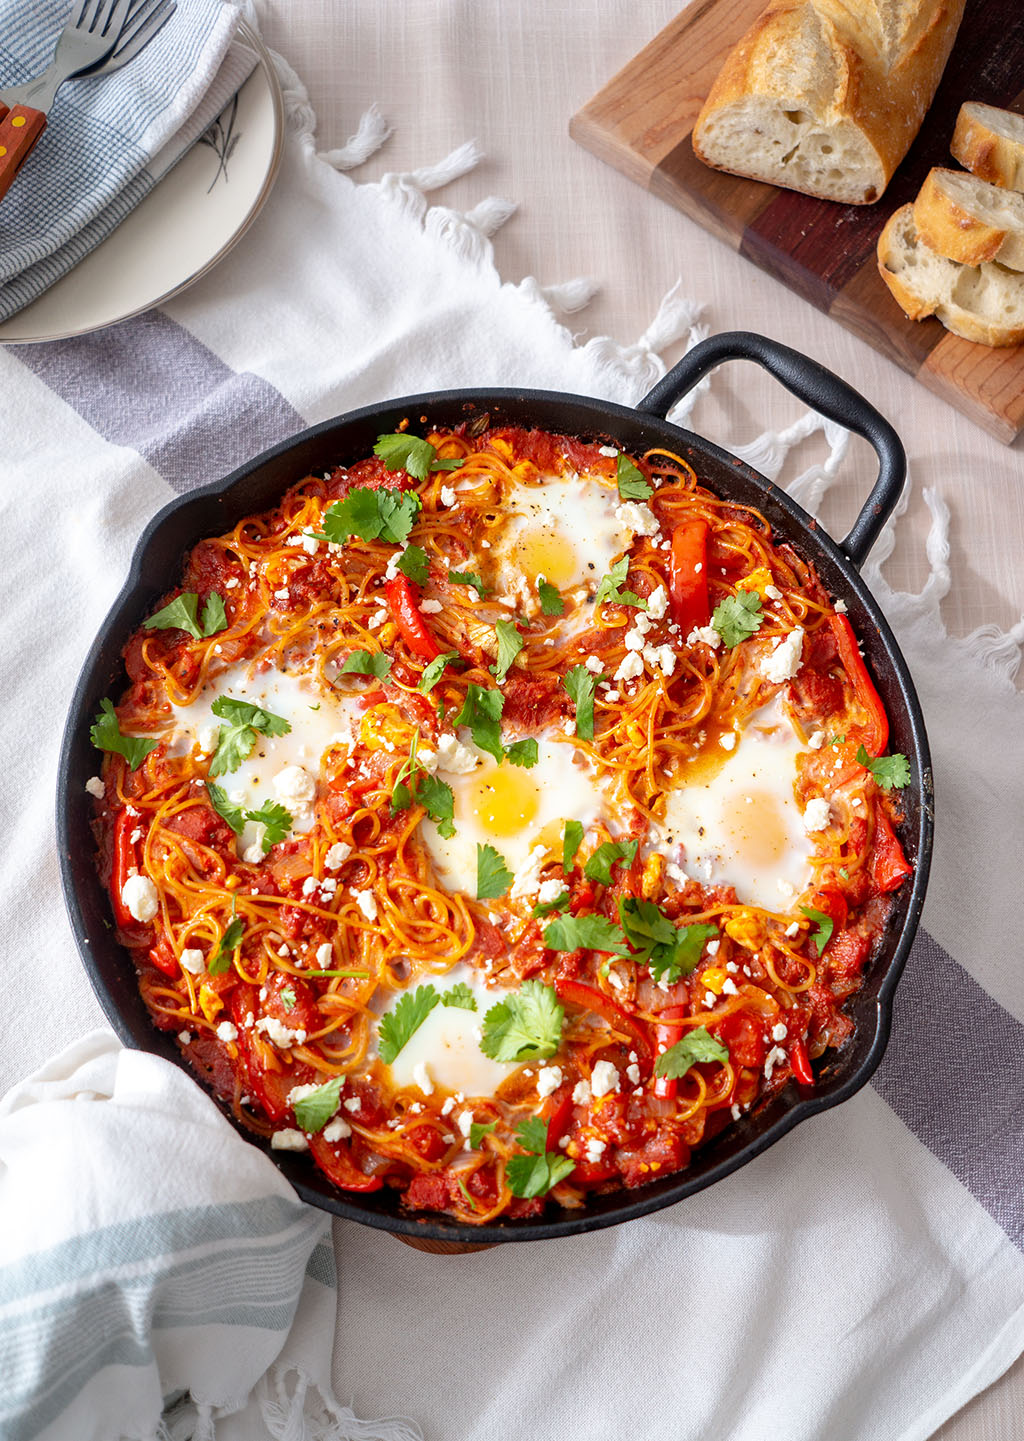 Shakshuka Spaghetti bake in a cast iron frying pan